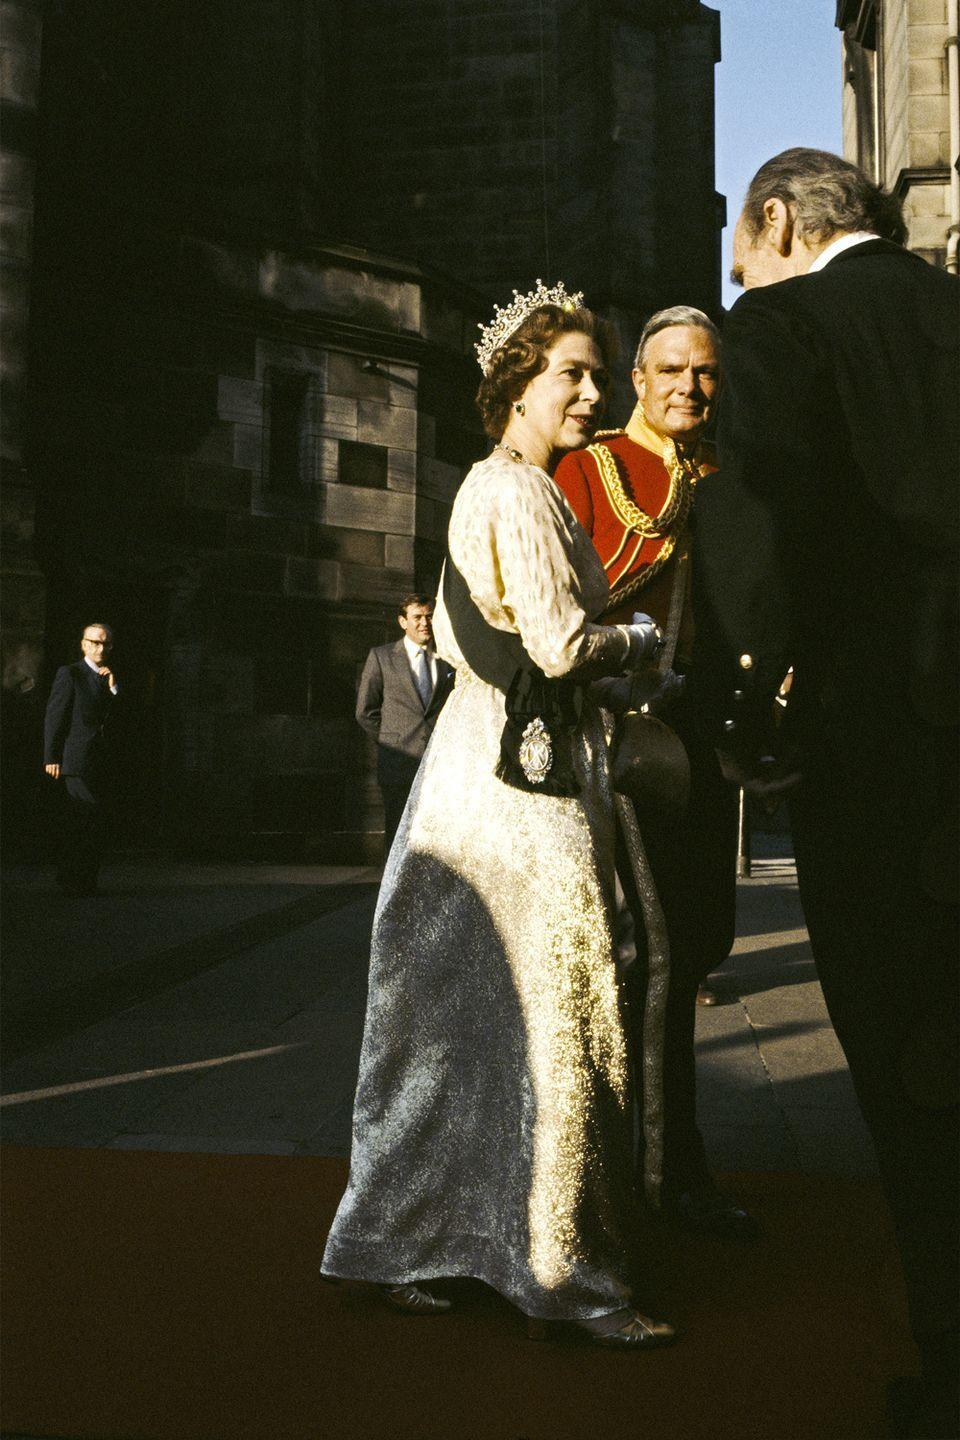 <p>Here she is in a captivating ball gown and tiara for an appearance at the Royal Scottish Piper's Society Ball Assembly Rooms, in Edinburgh, Scotland.</p>